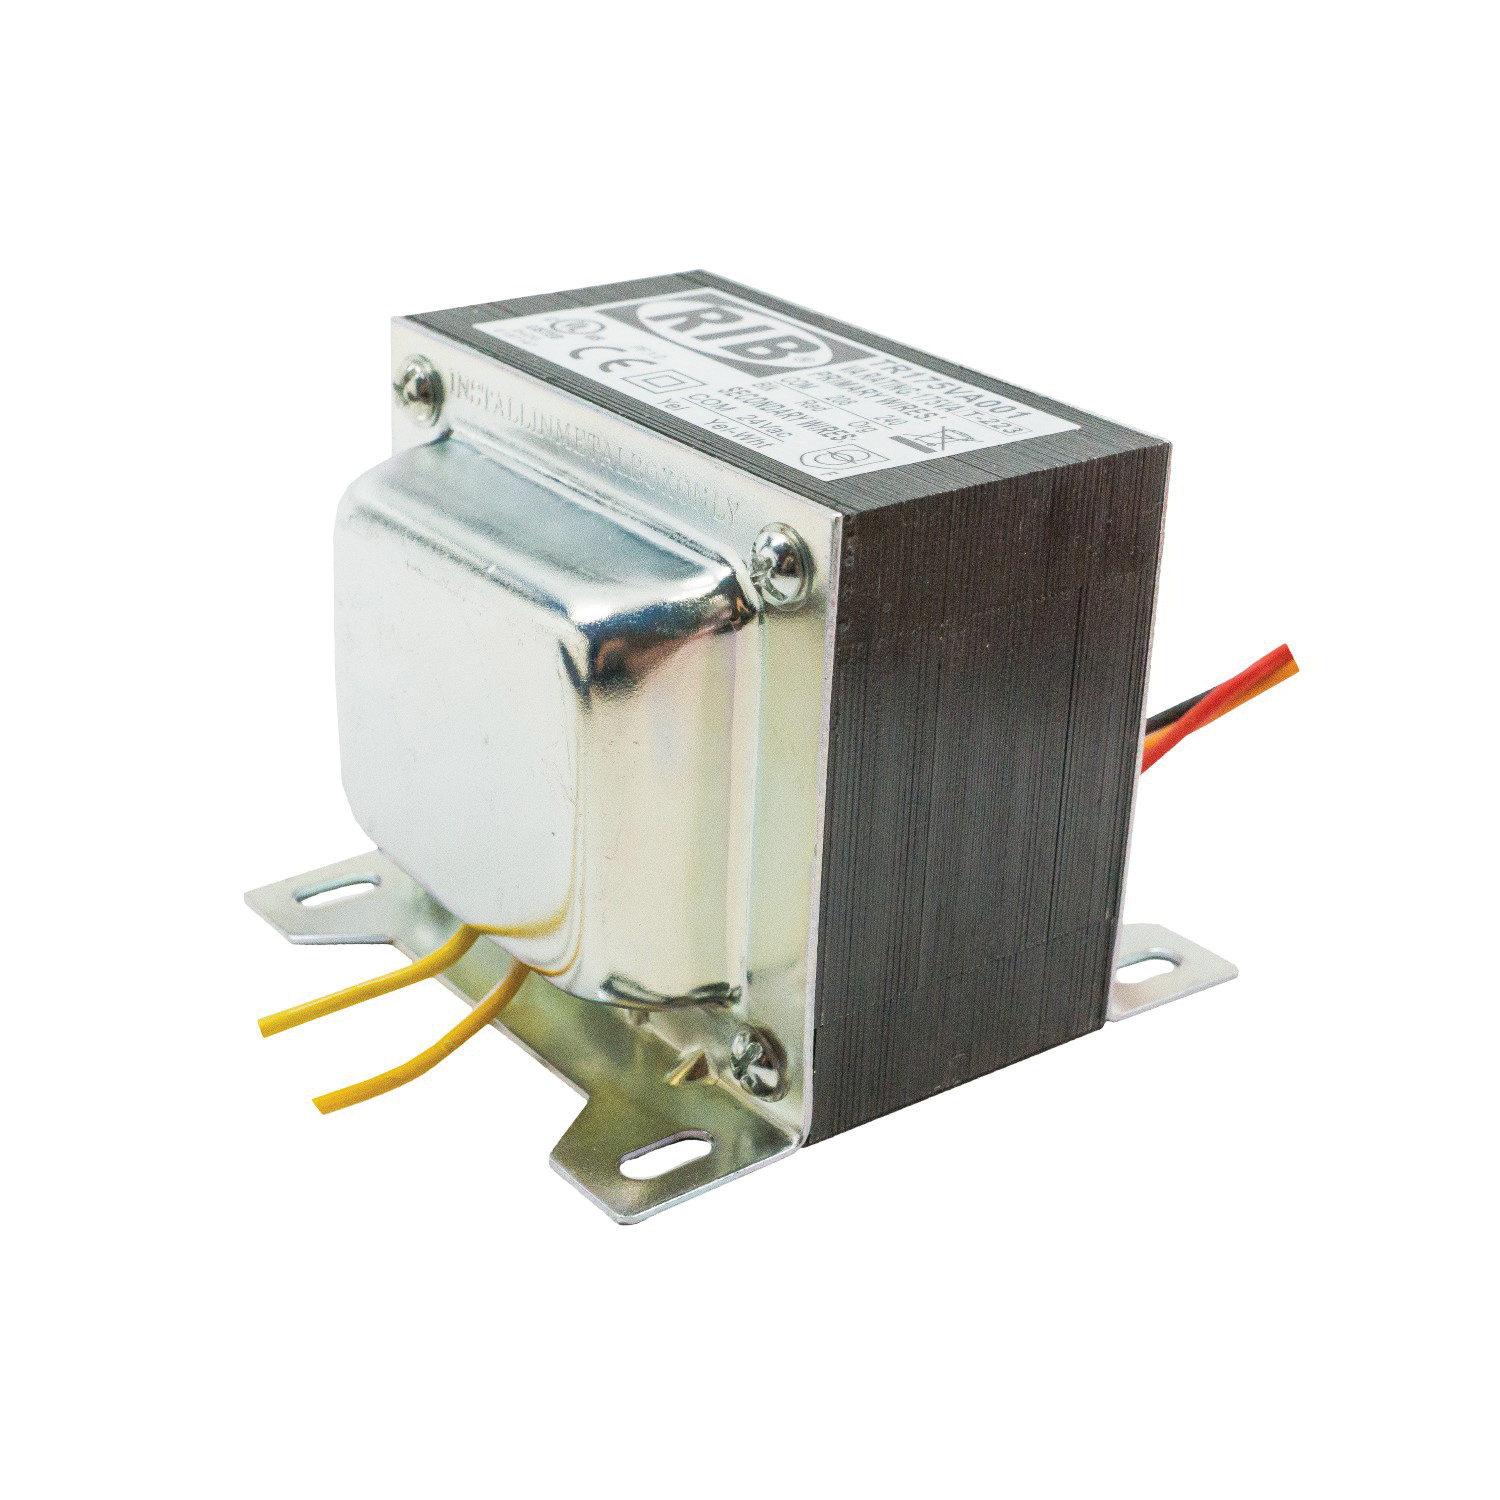 hight resolution of functional device tr175va001 1 phase dual bottom opening control transformer 240 208 volt